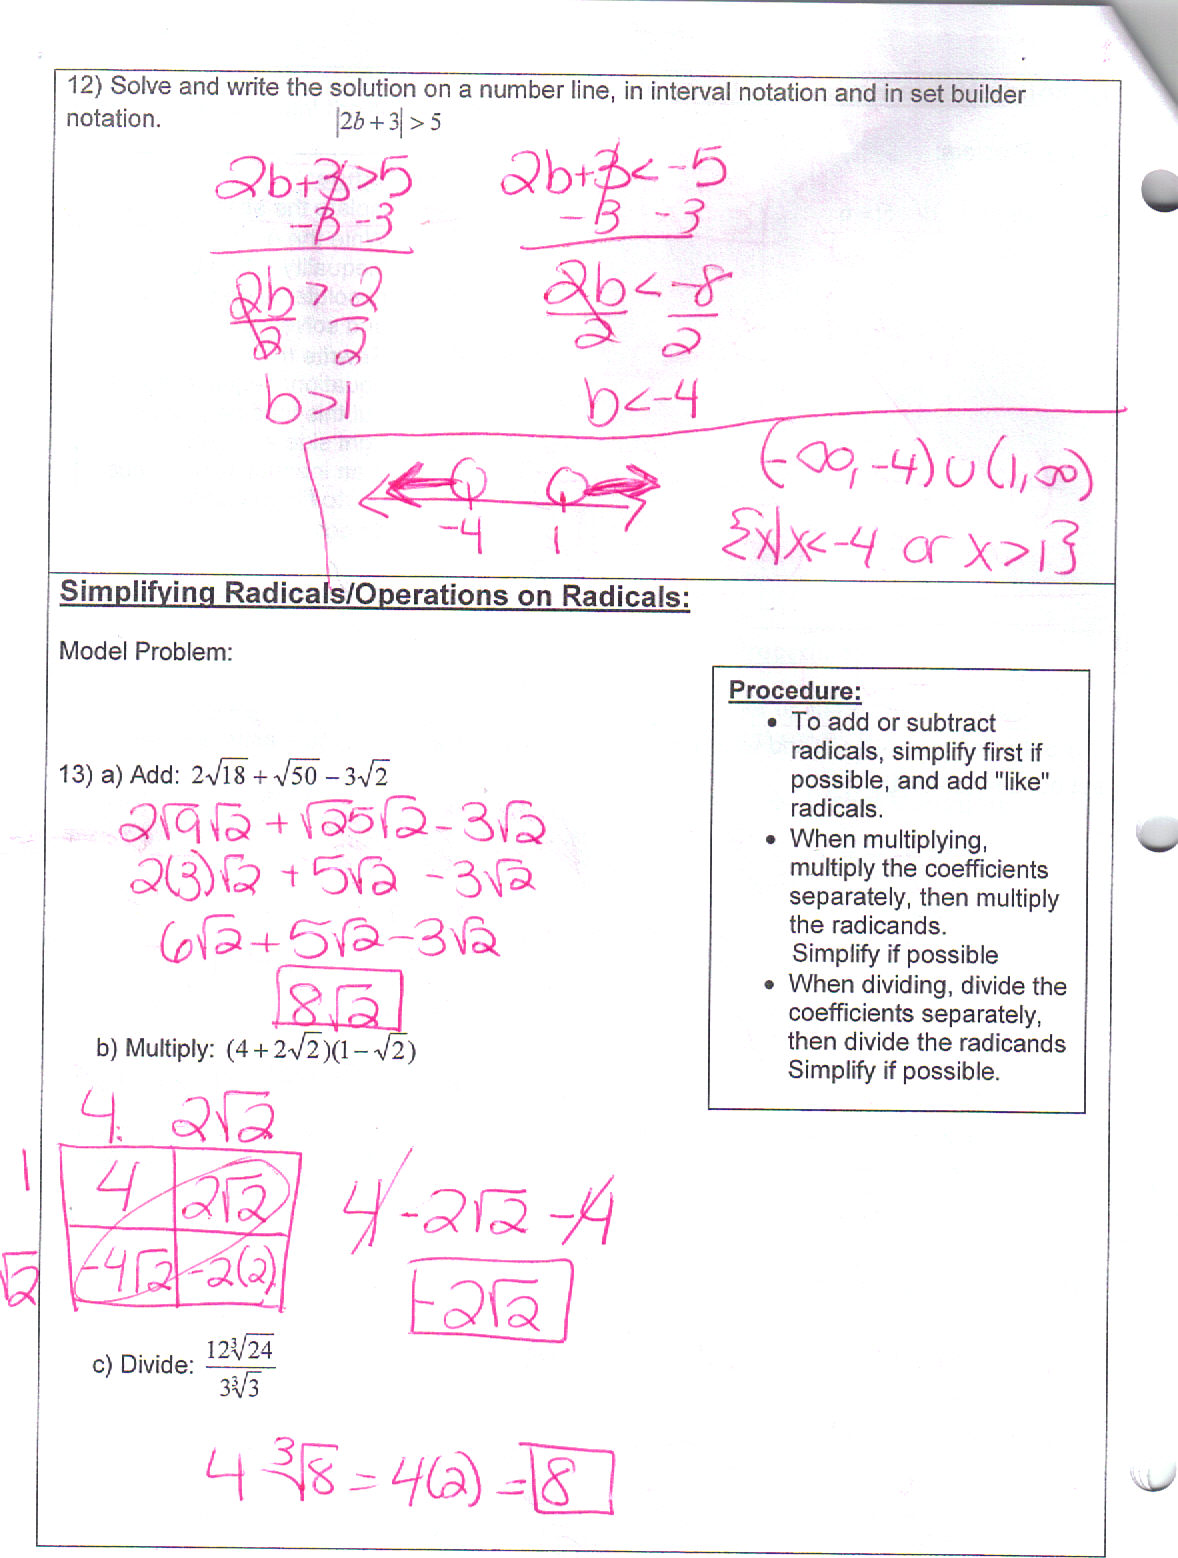 algebra 2 trigonometry review answers algebra 2 trigonometry test 1 answer key assessment. Black Bedroom Furniture Sets. Home Design Ideas